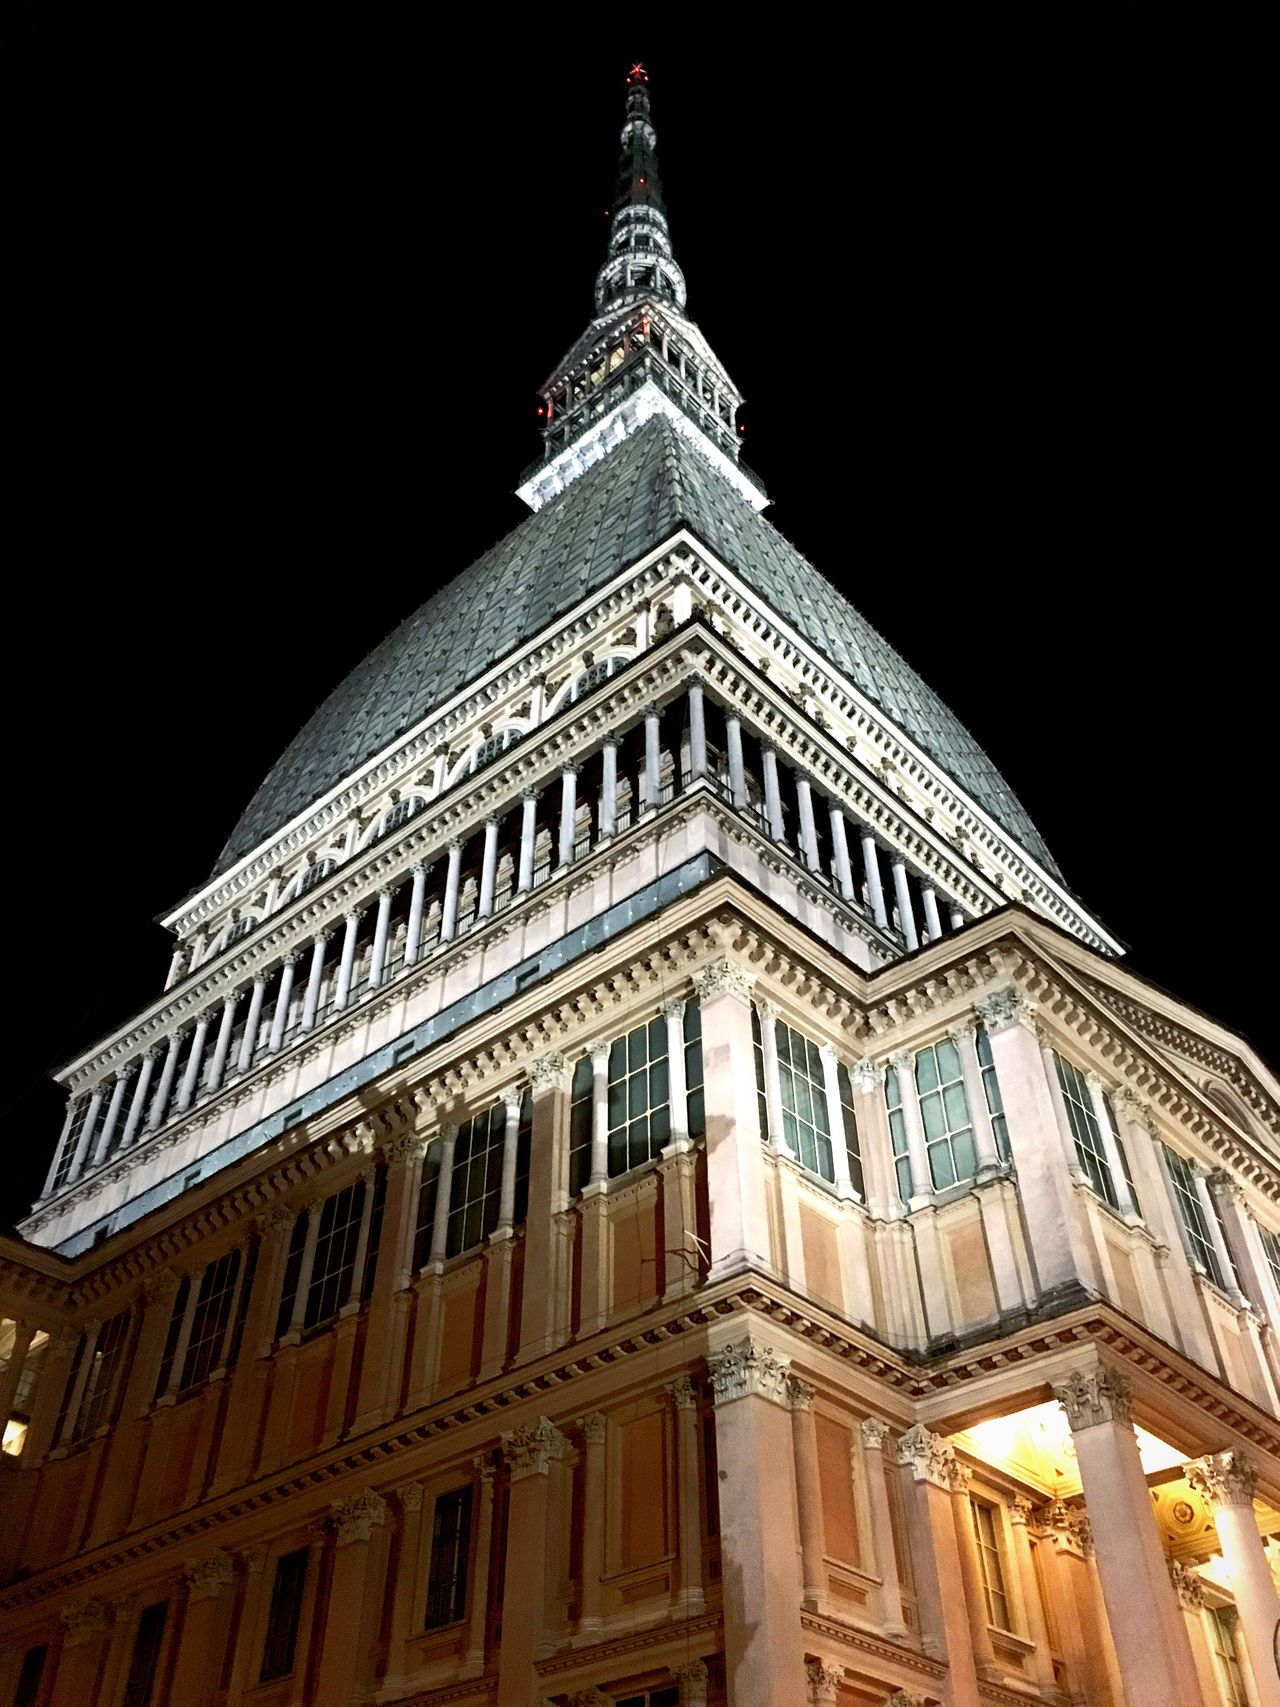 Mole Antonelliana in Turin - Side B Mole Antonelliana Moleantonelliana Turin Turin Italy Torino Italy Italia Monuments Monument Building Building Exterior City Towers Tower Historical Monuments Historical Building Night Photography Nightphotography Landmarks Landmark Urban Night Buildings Urban Landscape Urban Geometry